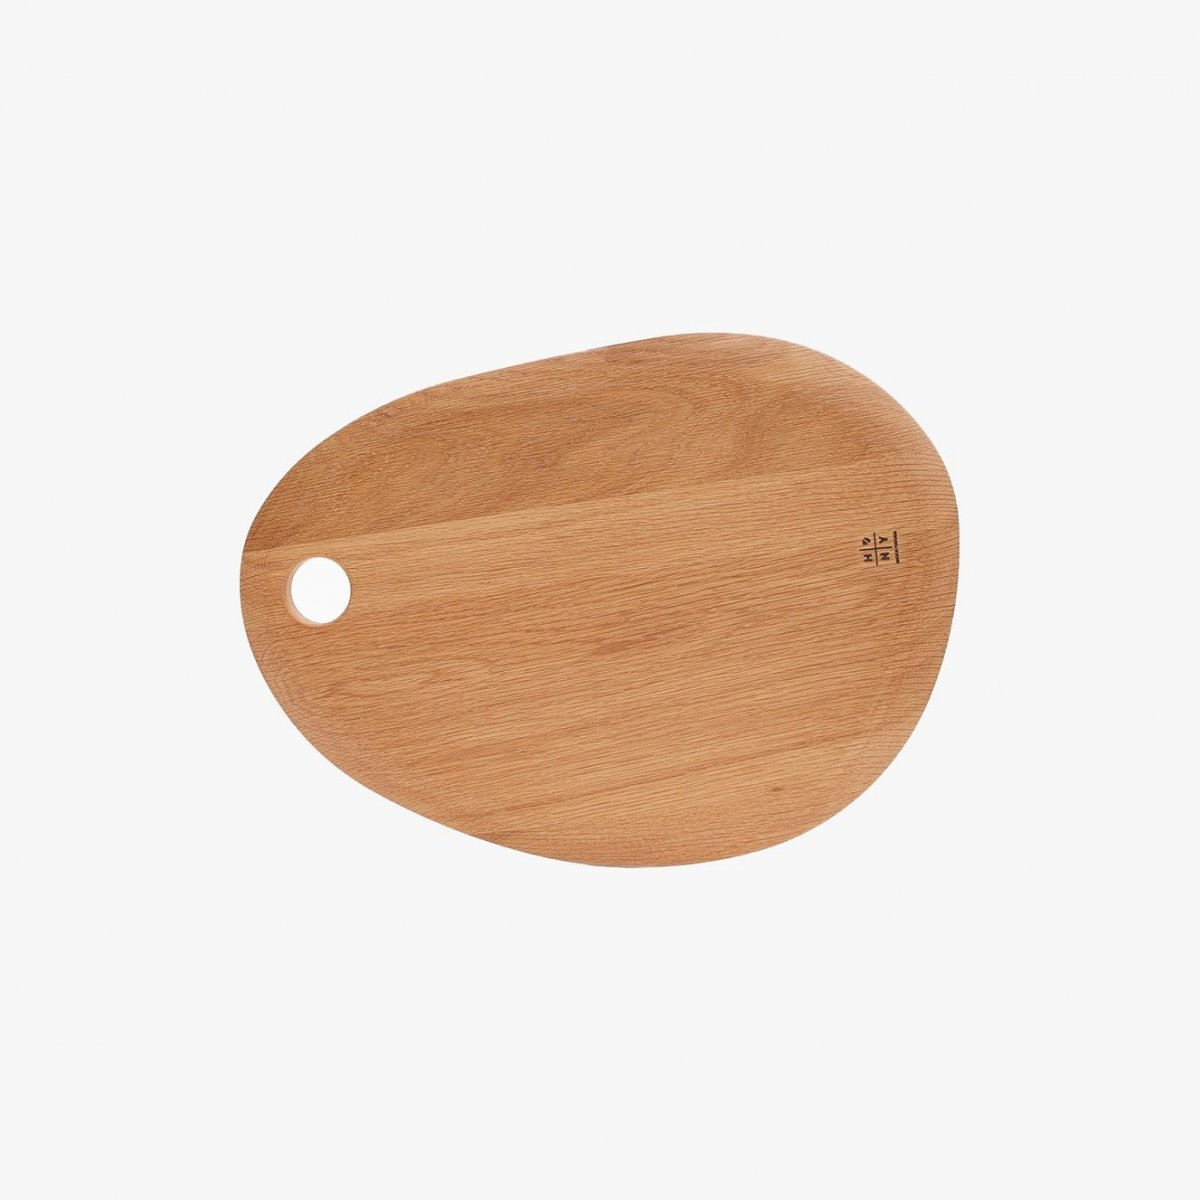 Simple Cutting Board, large.